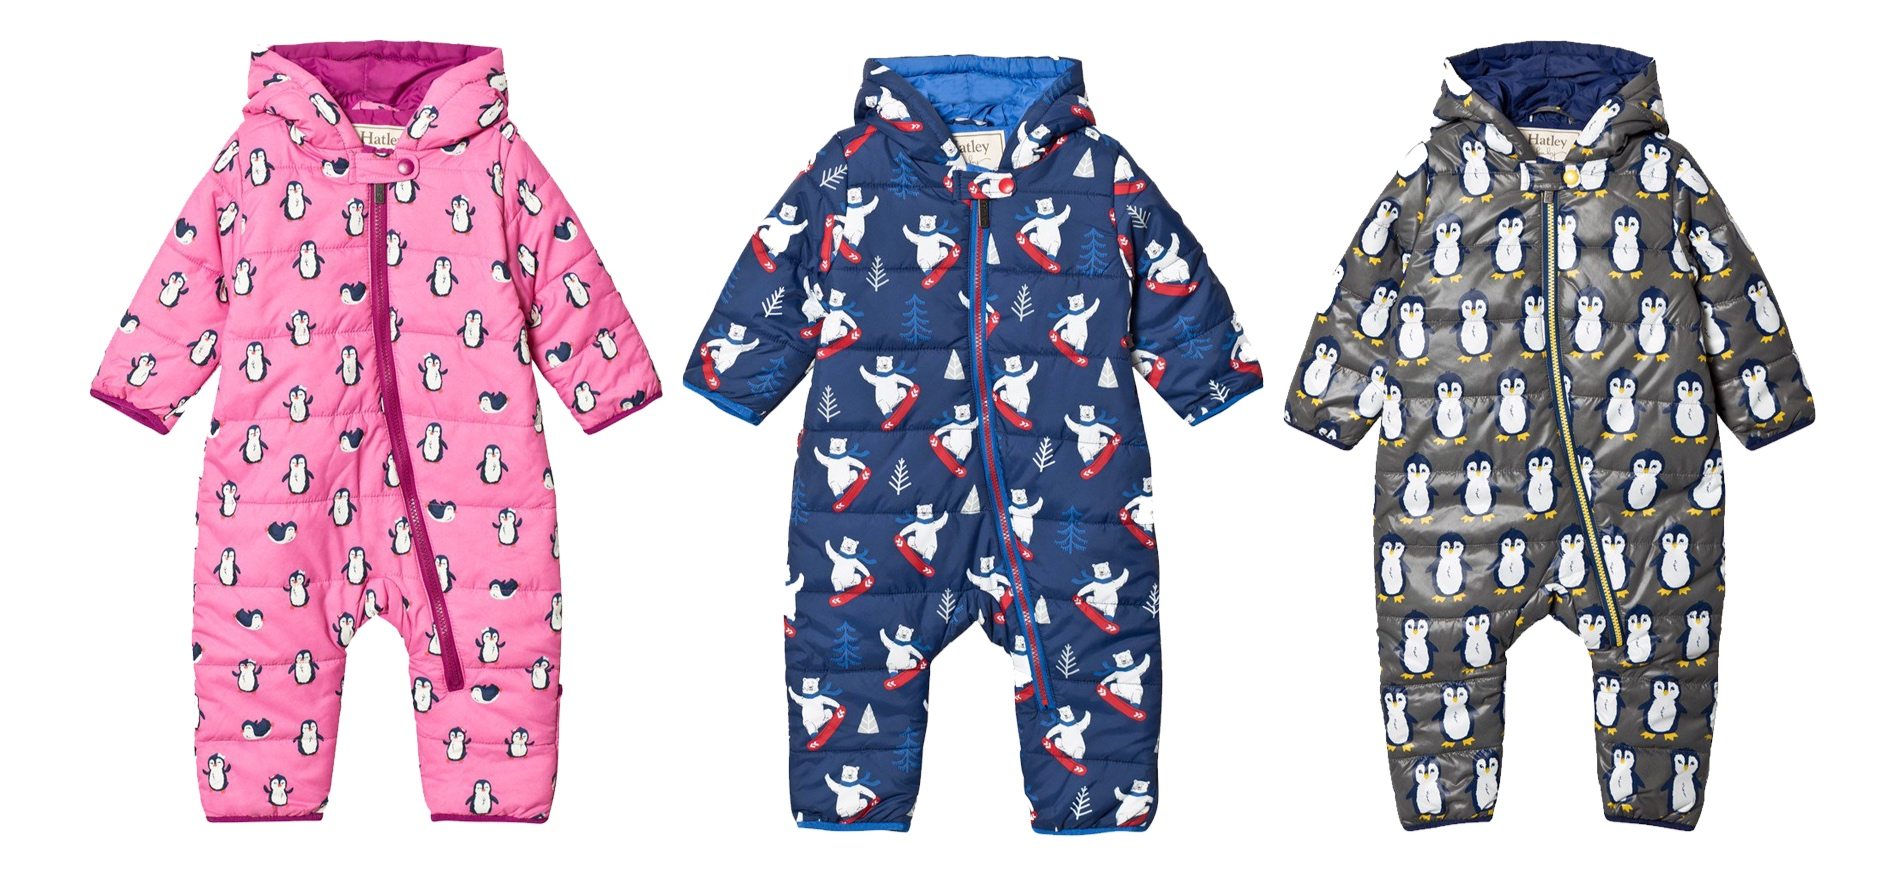 Shop Hatley snowsuits at  Alex and Alexa.